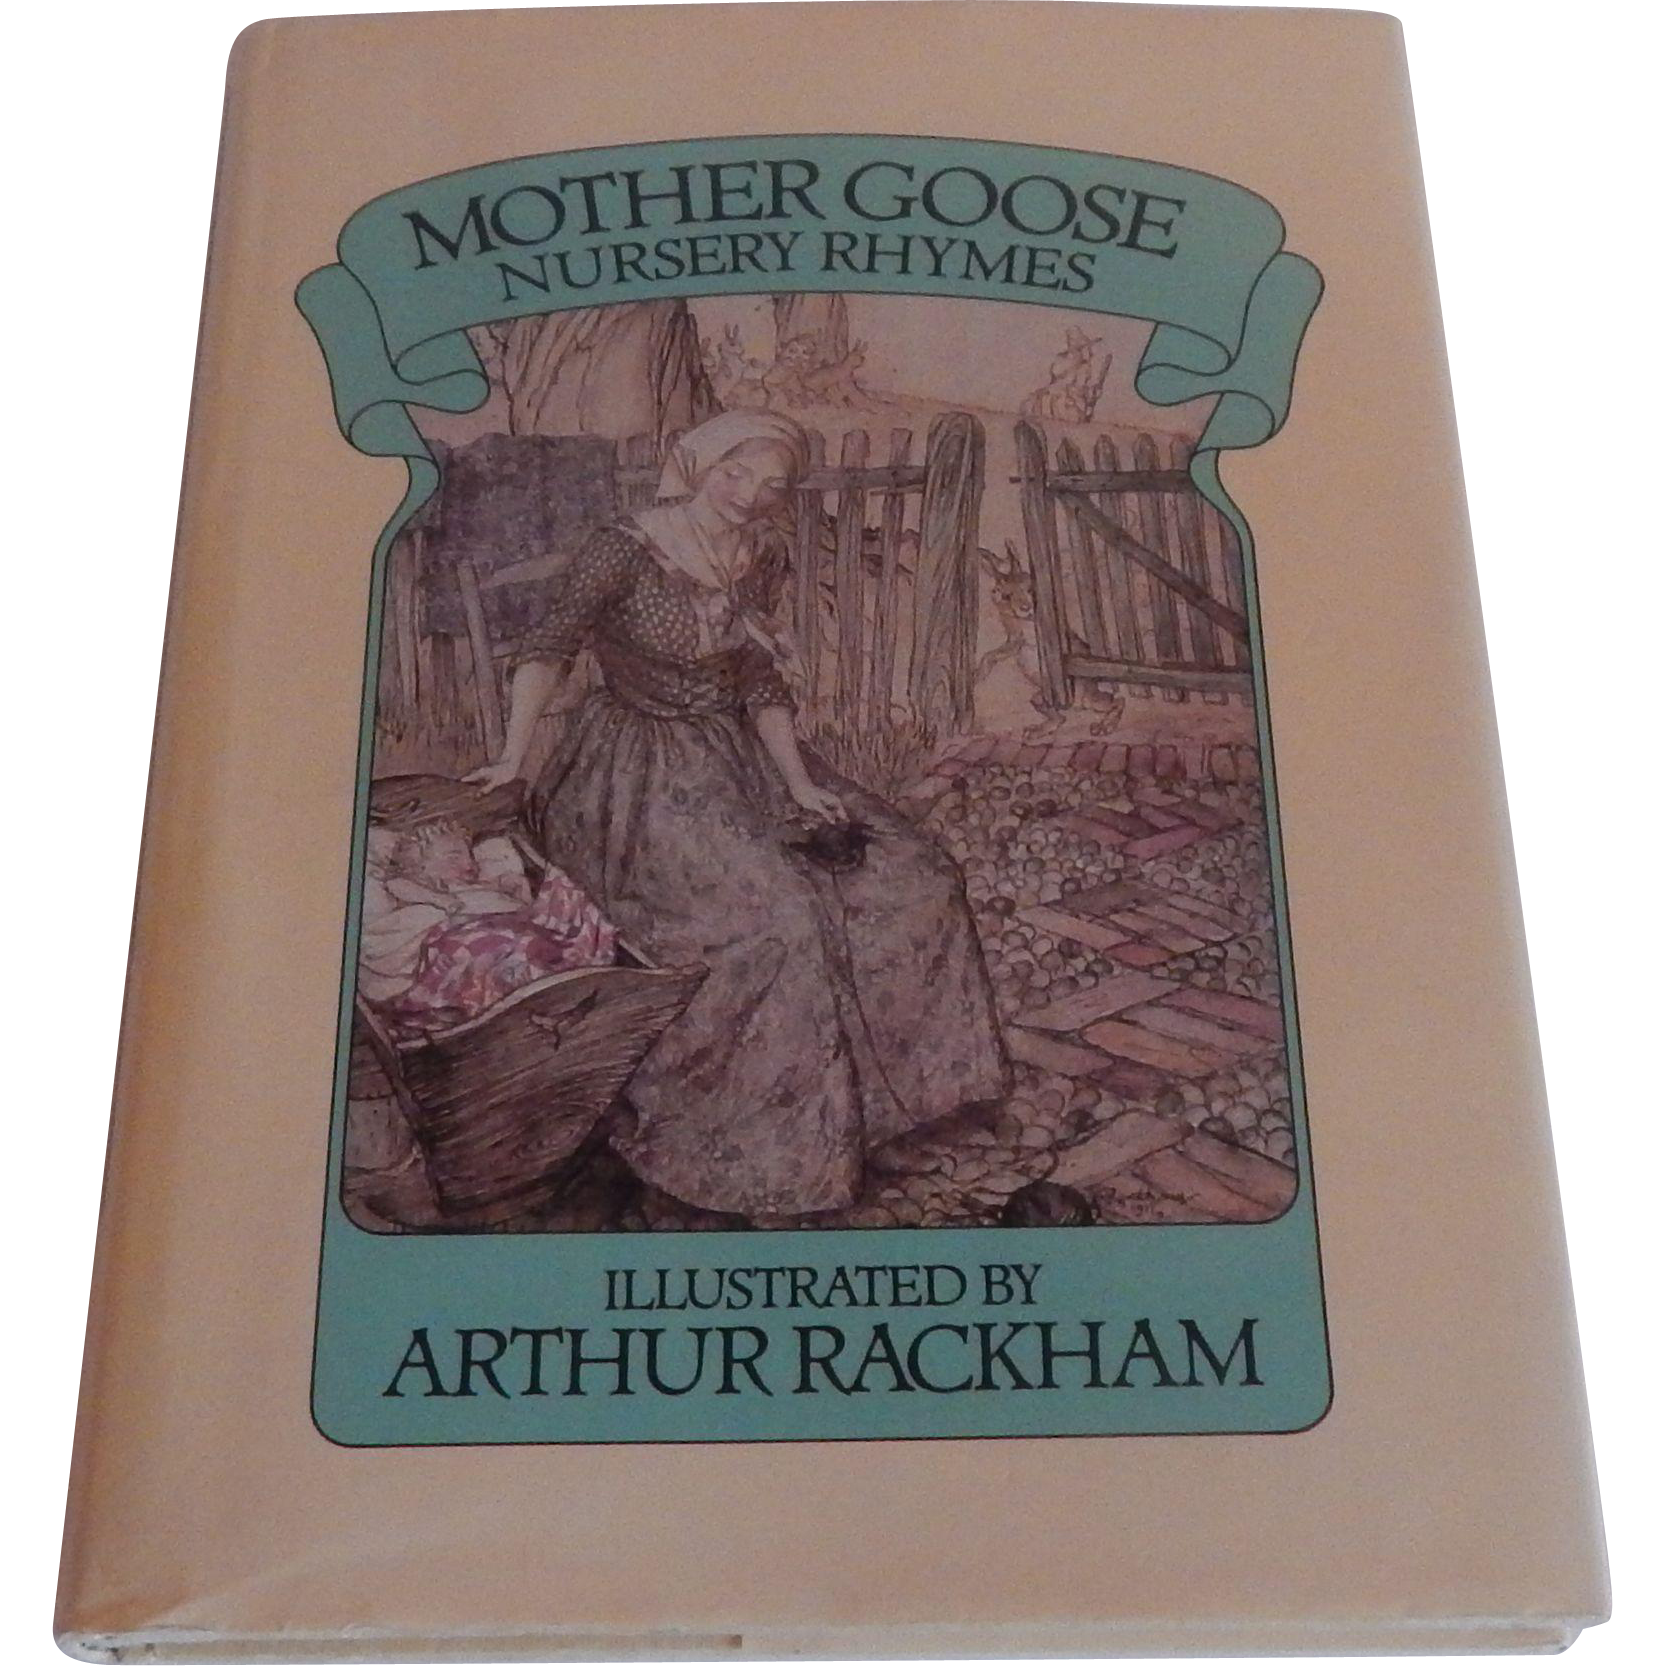 Mother Goose Nursery Rhymes Illustrated by Arthur Rackham